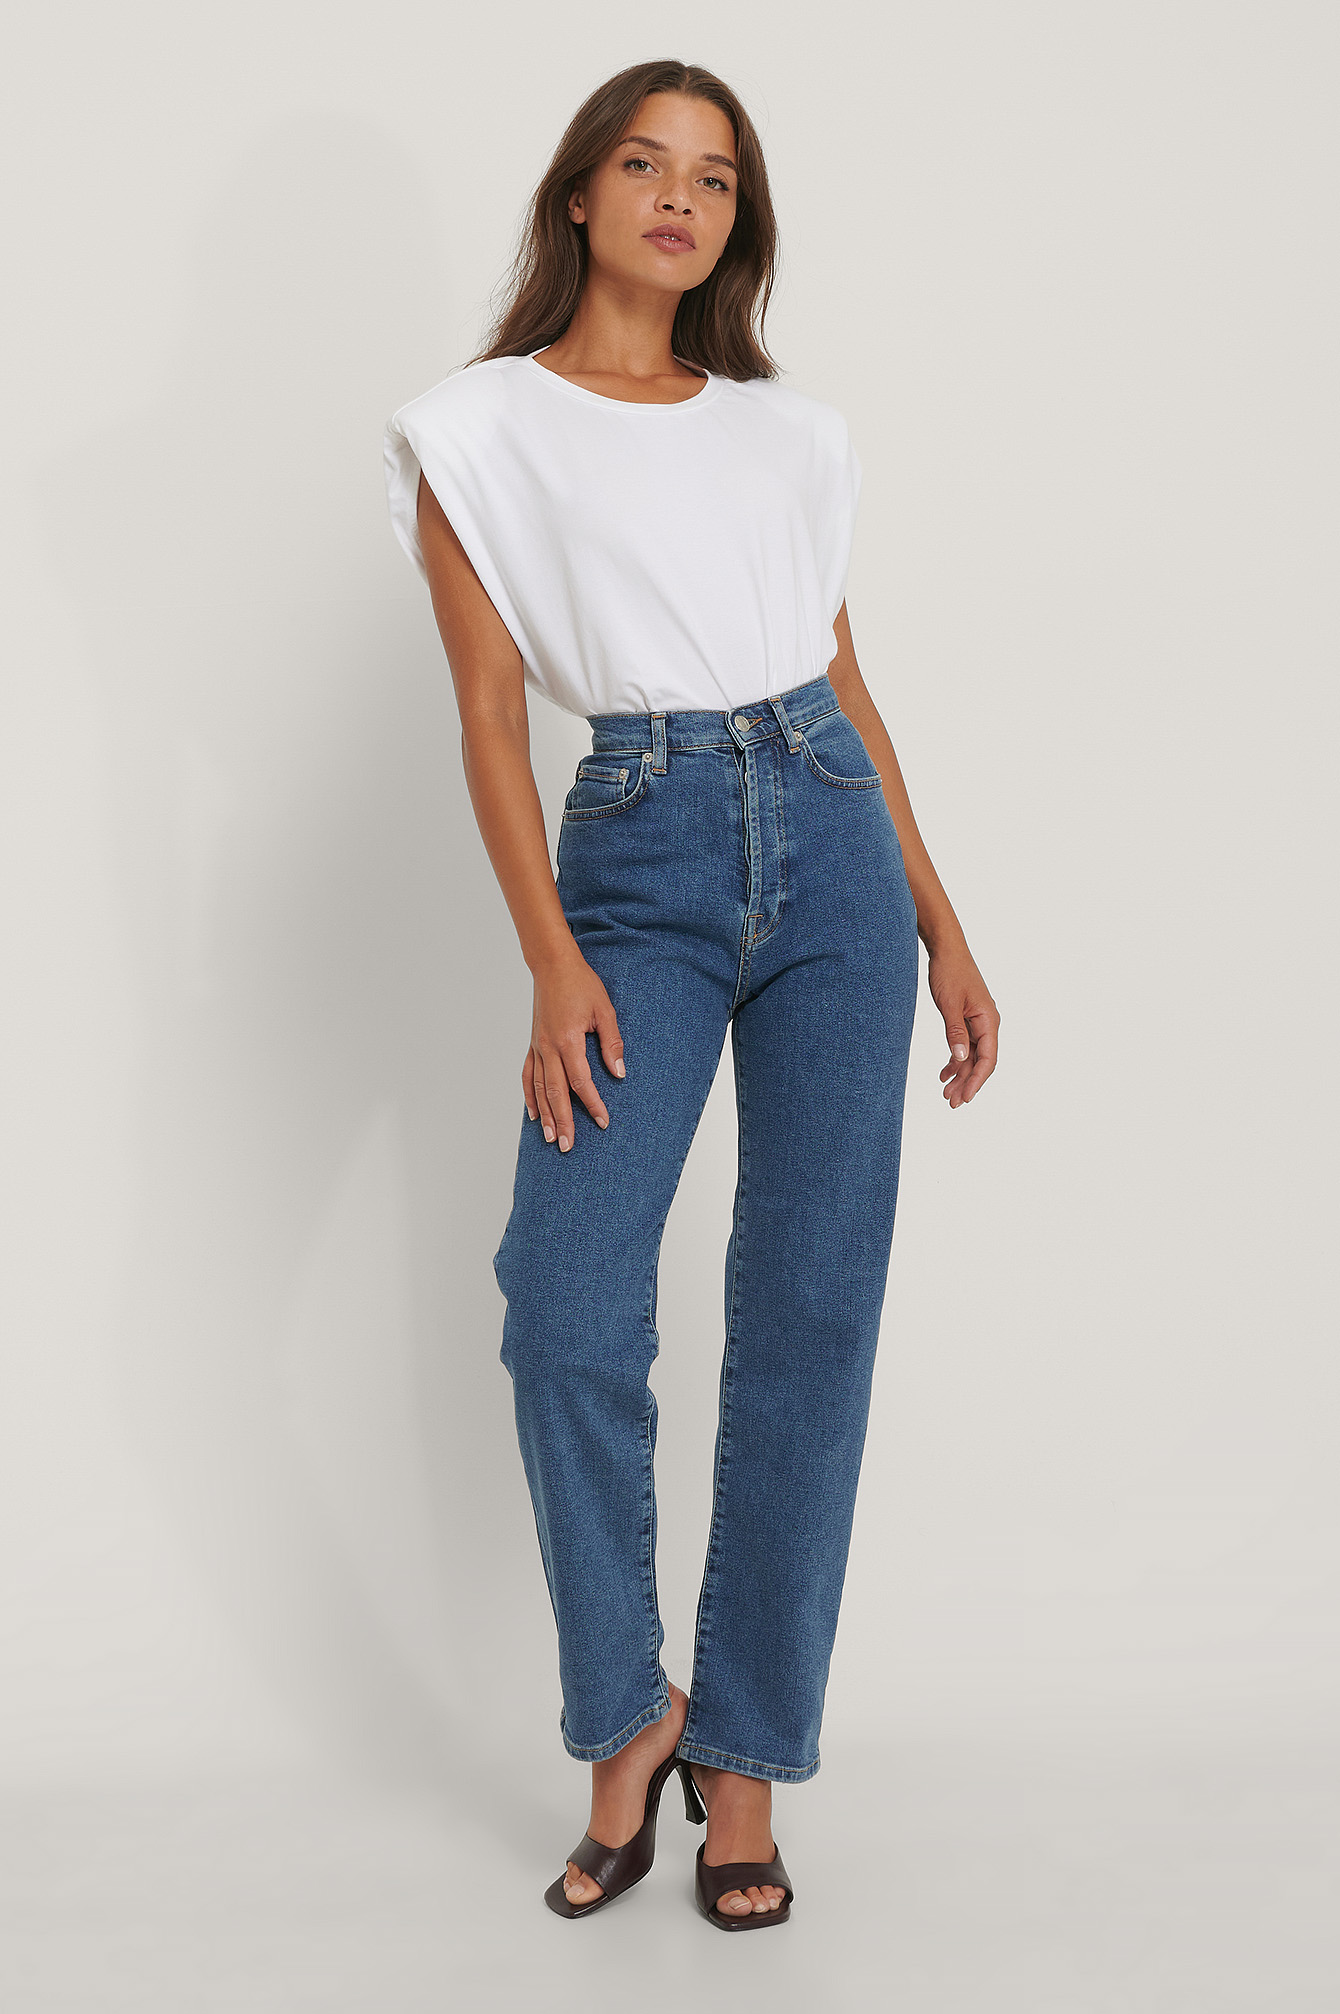 Blue Straight High Waist Jeans